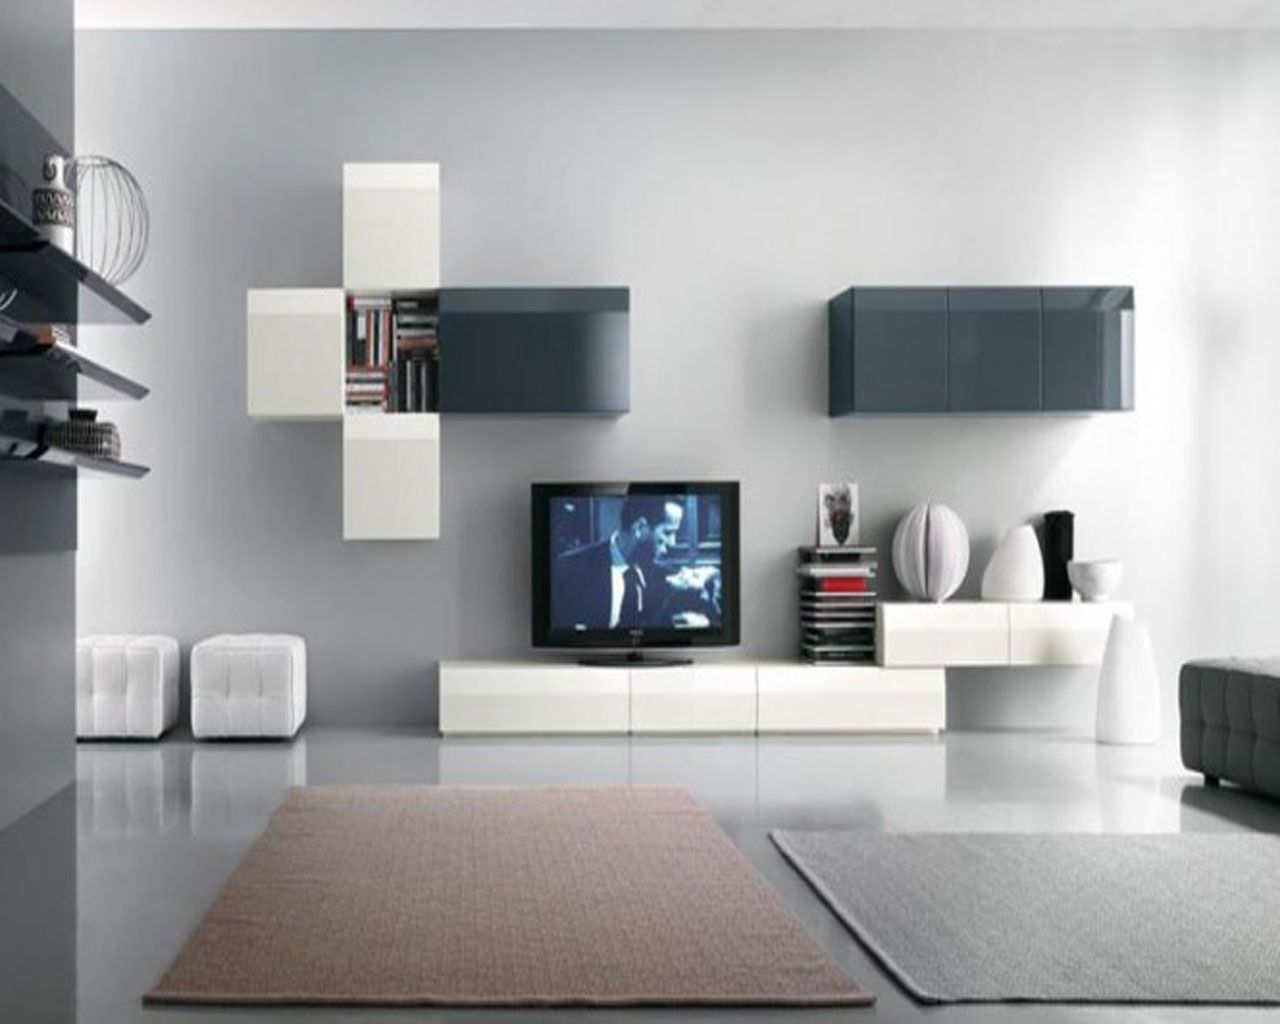 Wall Mounted Tv  Google Search  My New Home  Pinterest  White Unique Design For Wall Unit In Living Room Decorating Inspiration